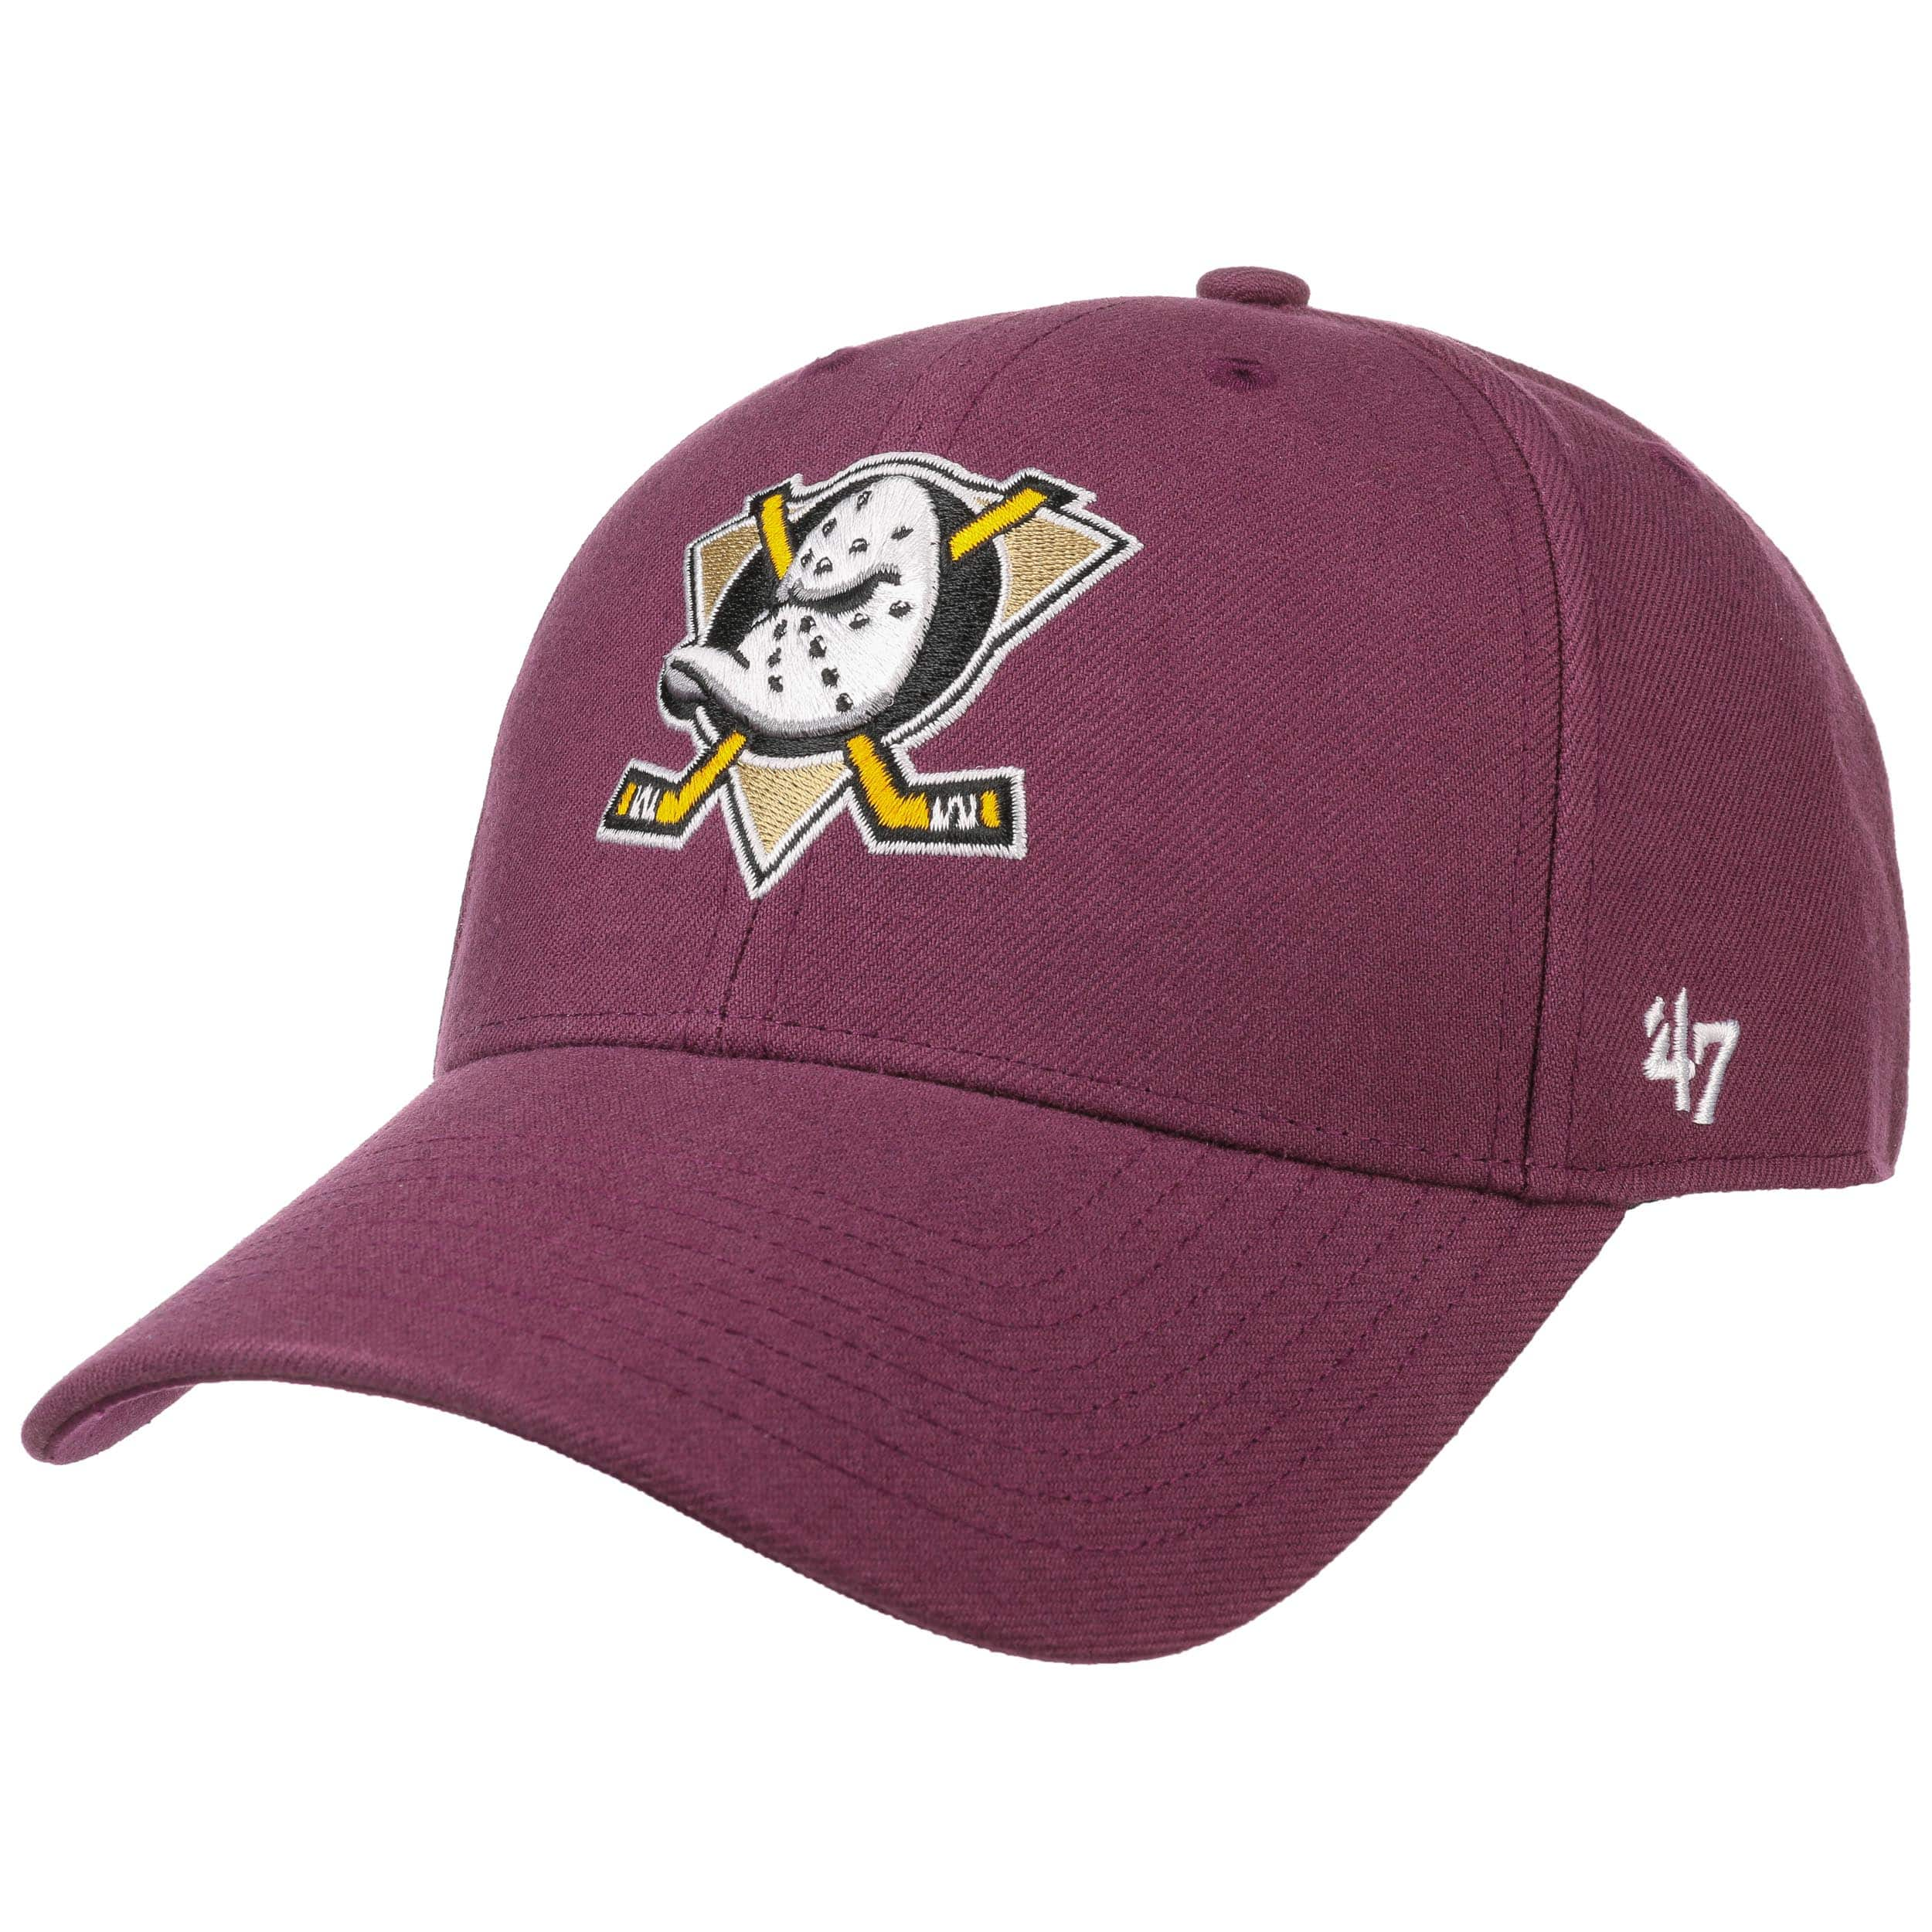 47 BRAND MVP Mighty Ducks Trucker Cap NHL Basecap